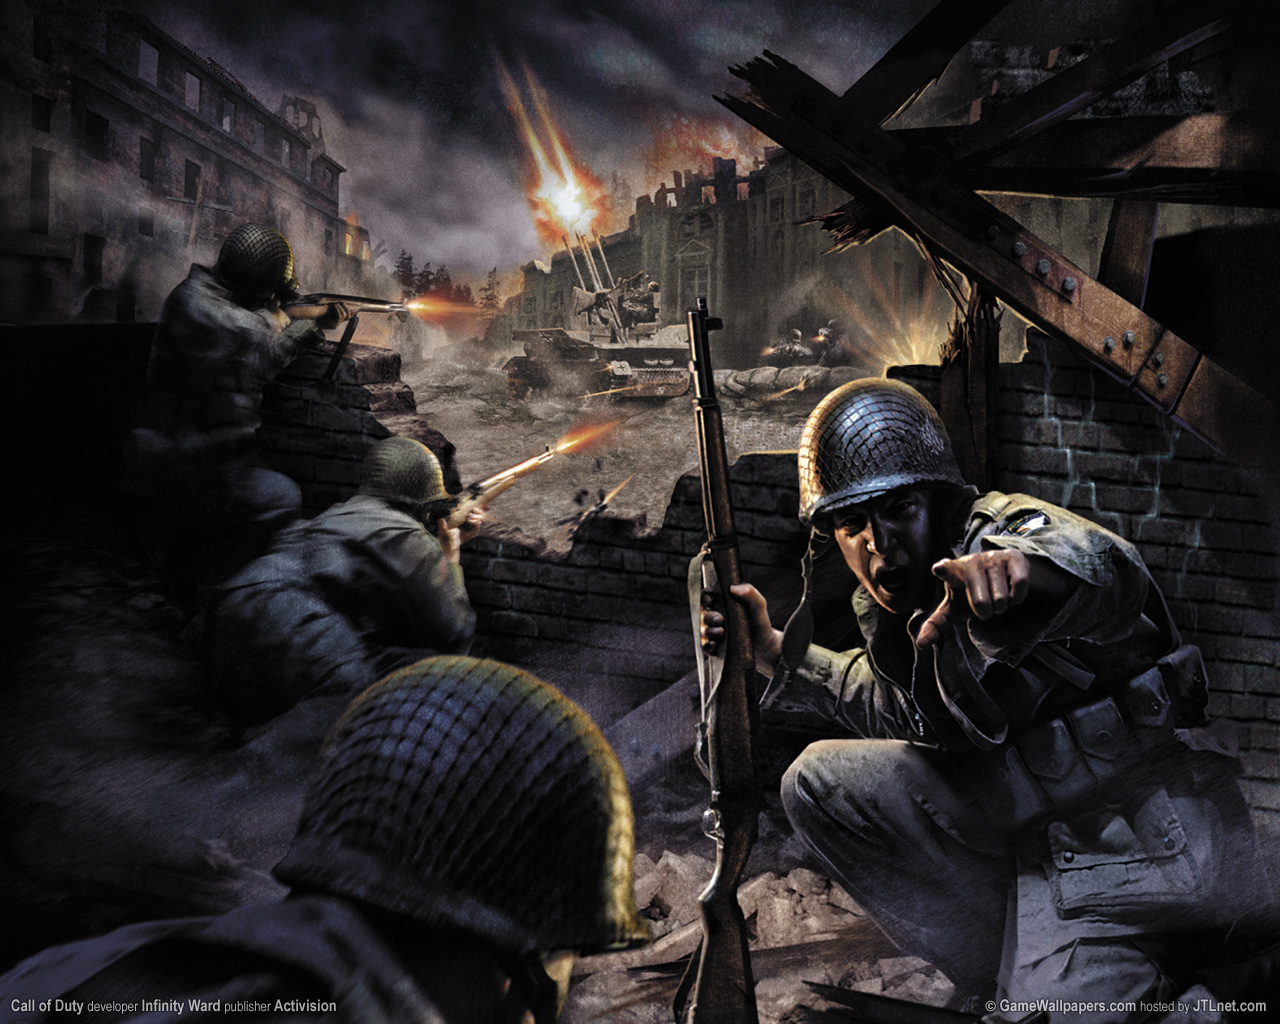 HD WALLPAPERS: Call of Duty 2 HD Wallpapers